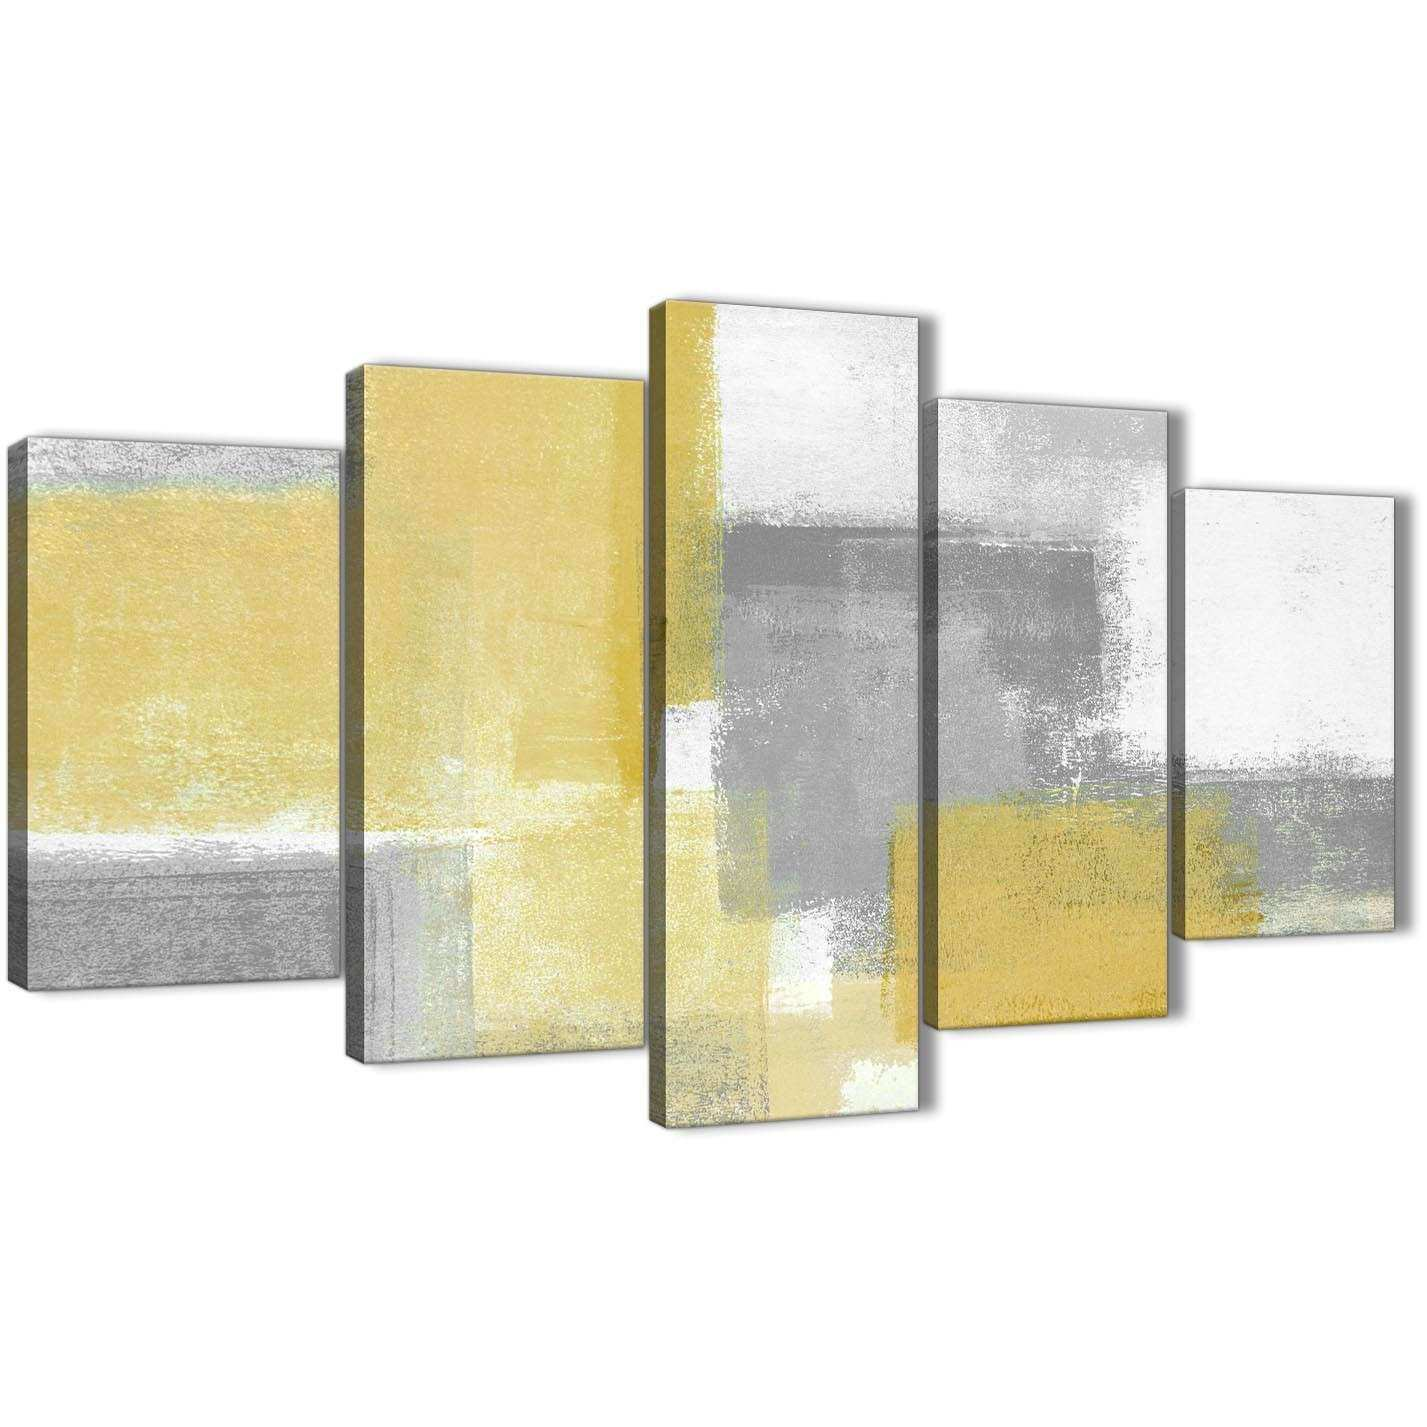 Grey and Yellow Wall Art Inspirational 5 Piece Mustard Yellow Grey ...